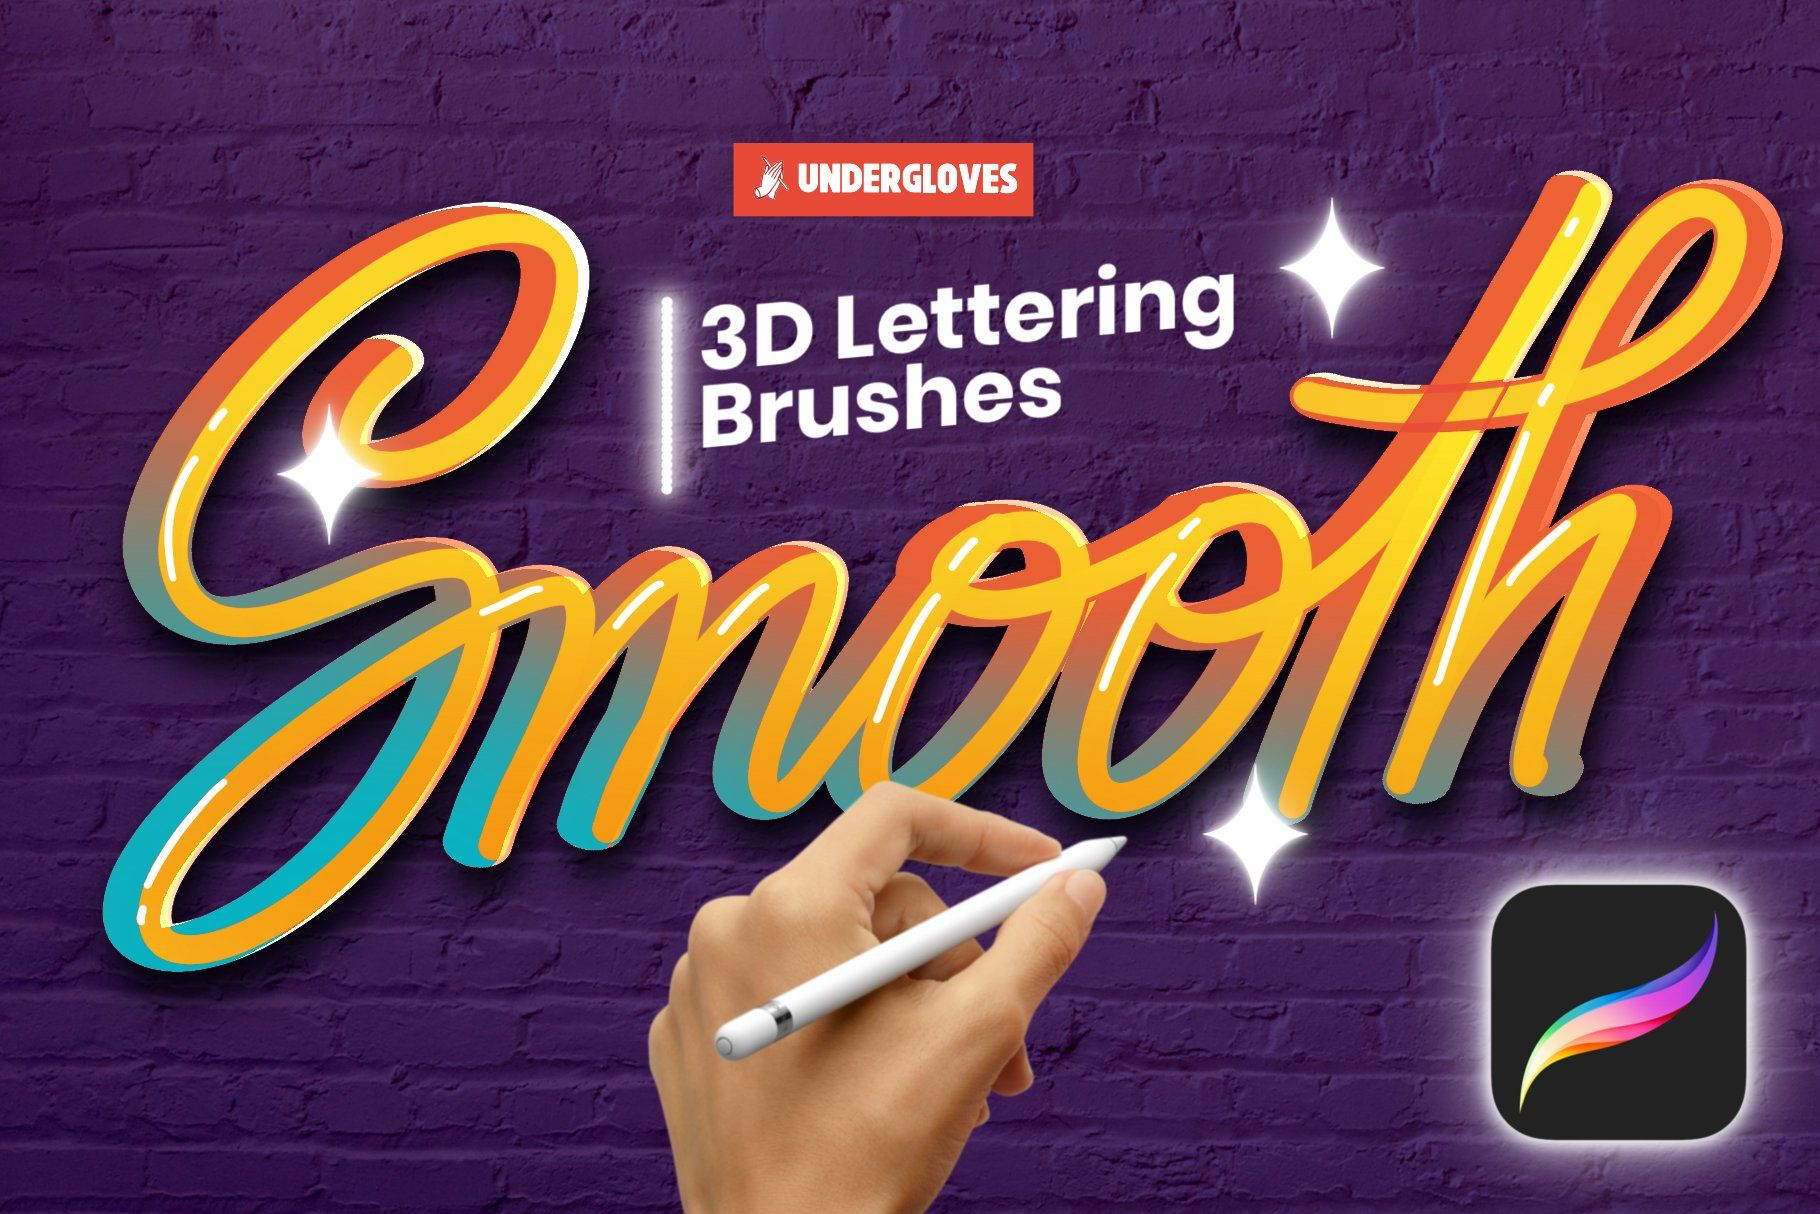 Download 22 Procreate 3D stroke brushes by Underglovesᵂᴶ on ...